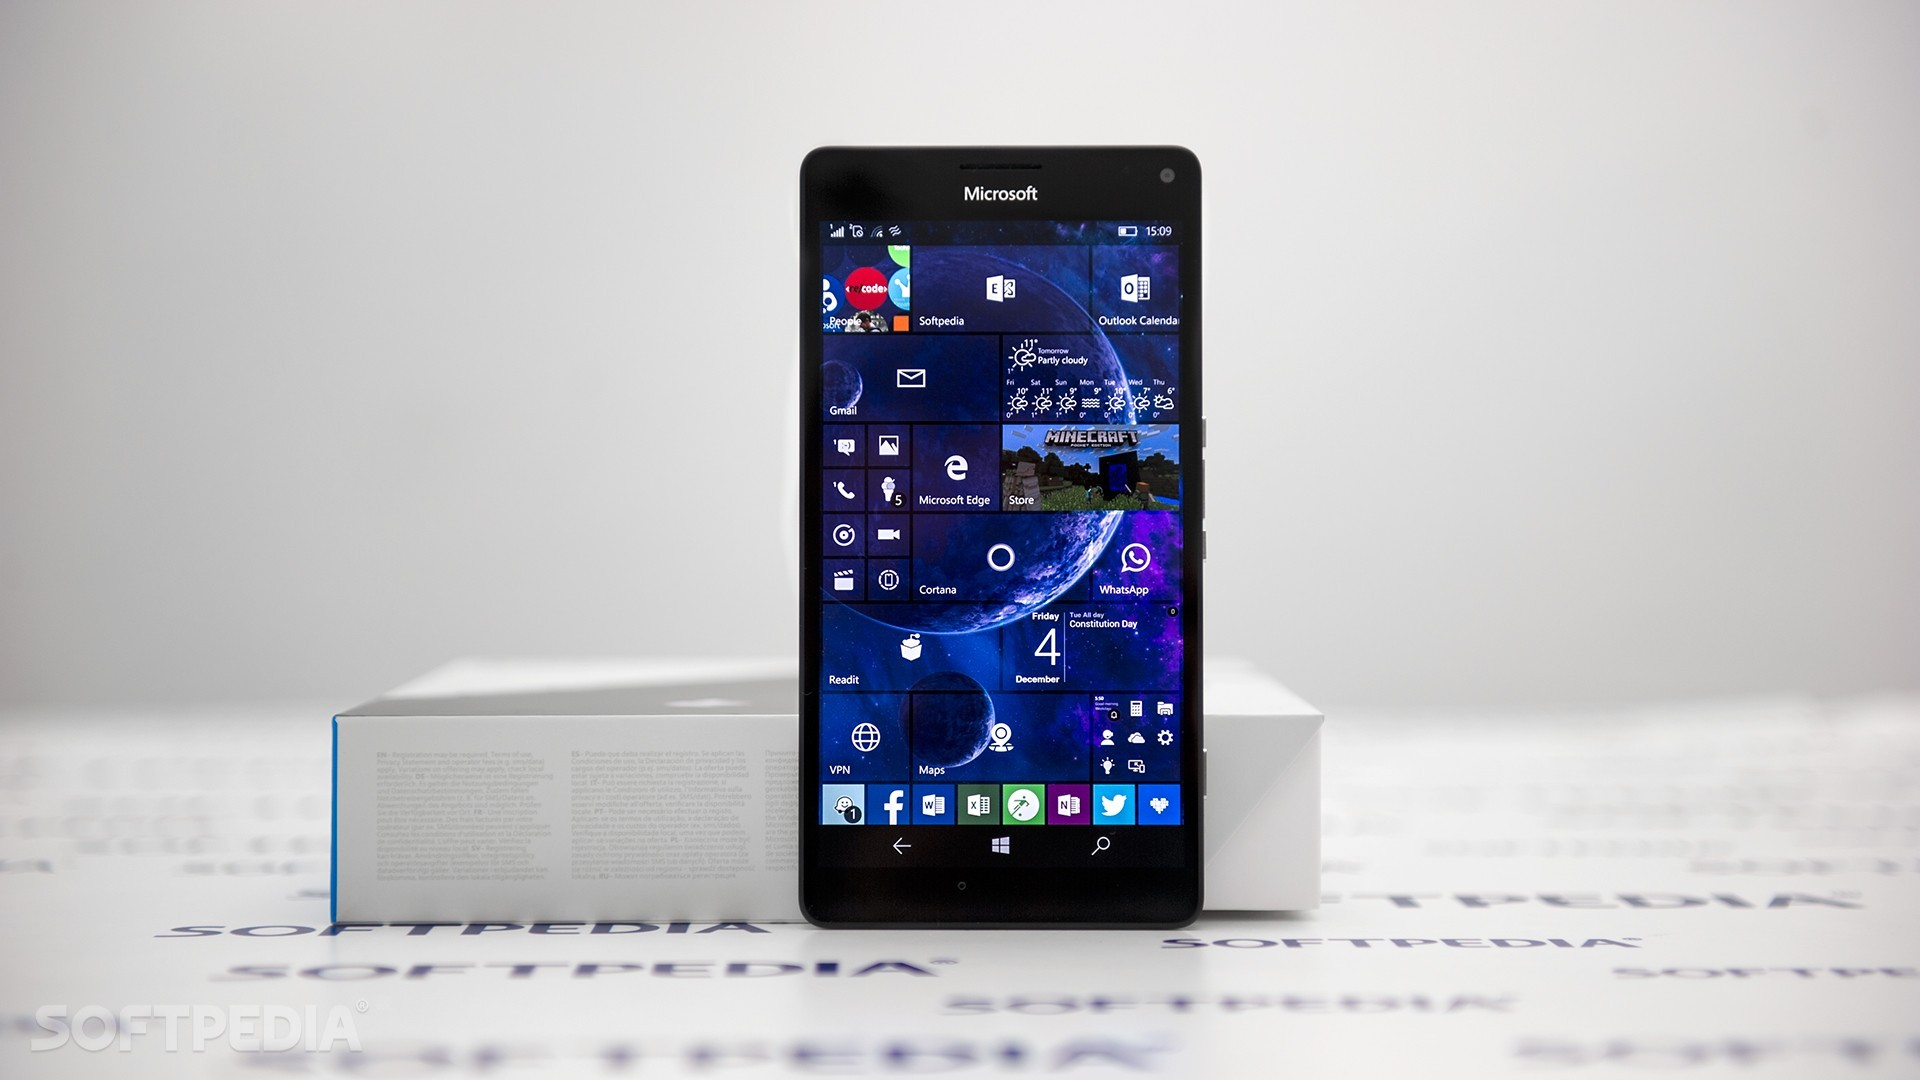 Android Defeats Windows Phones Even in the Microsoft Store